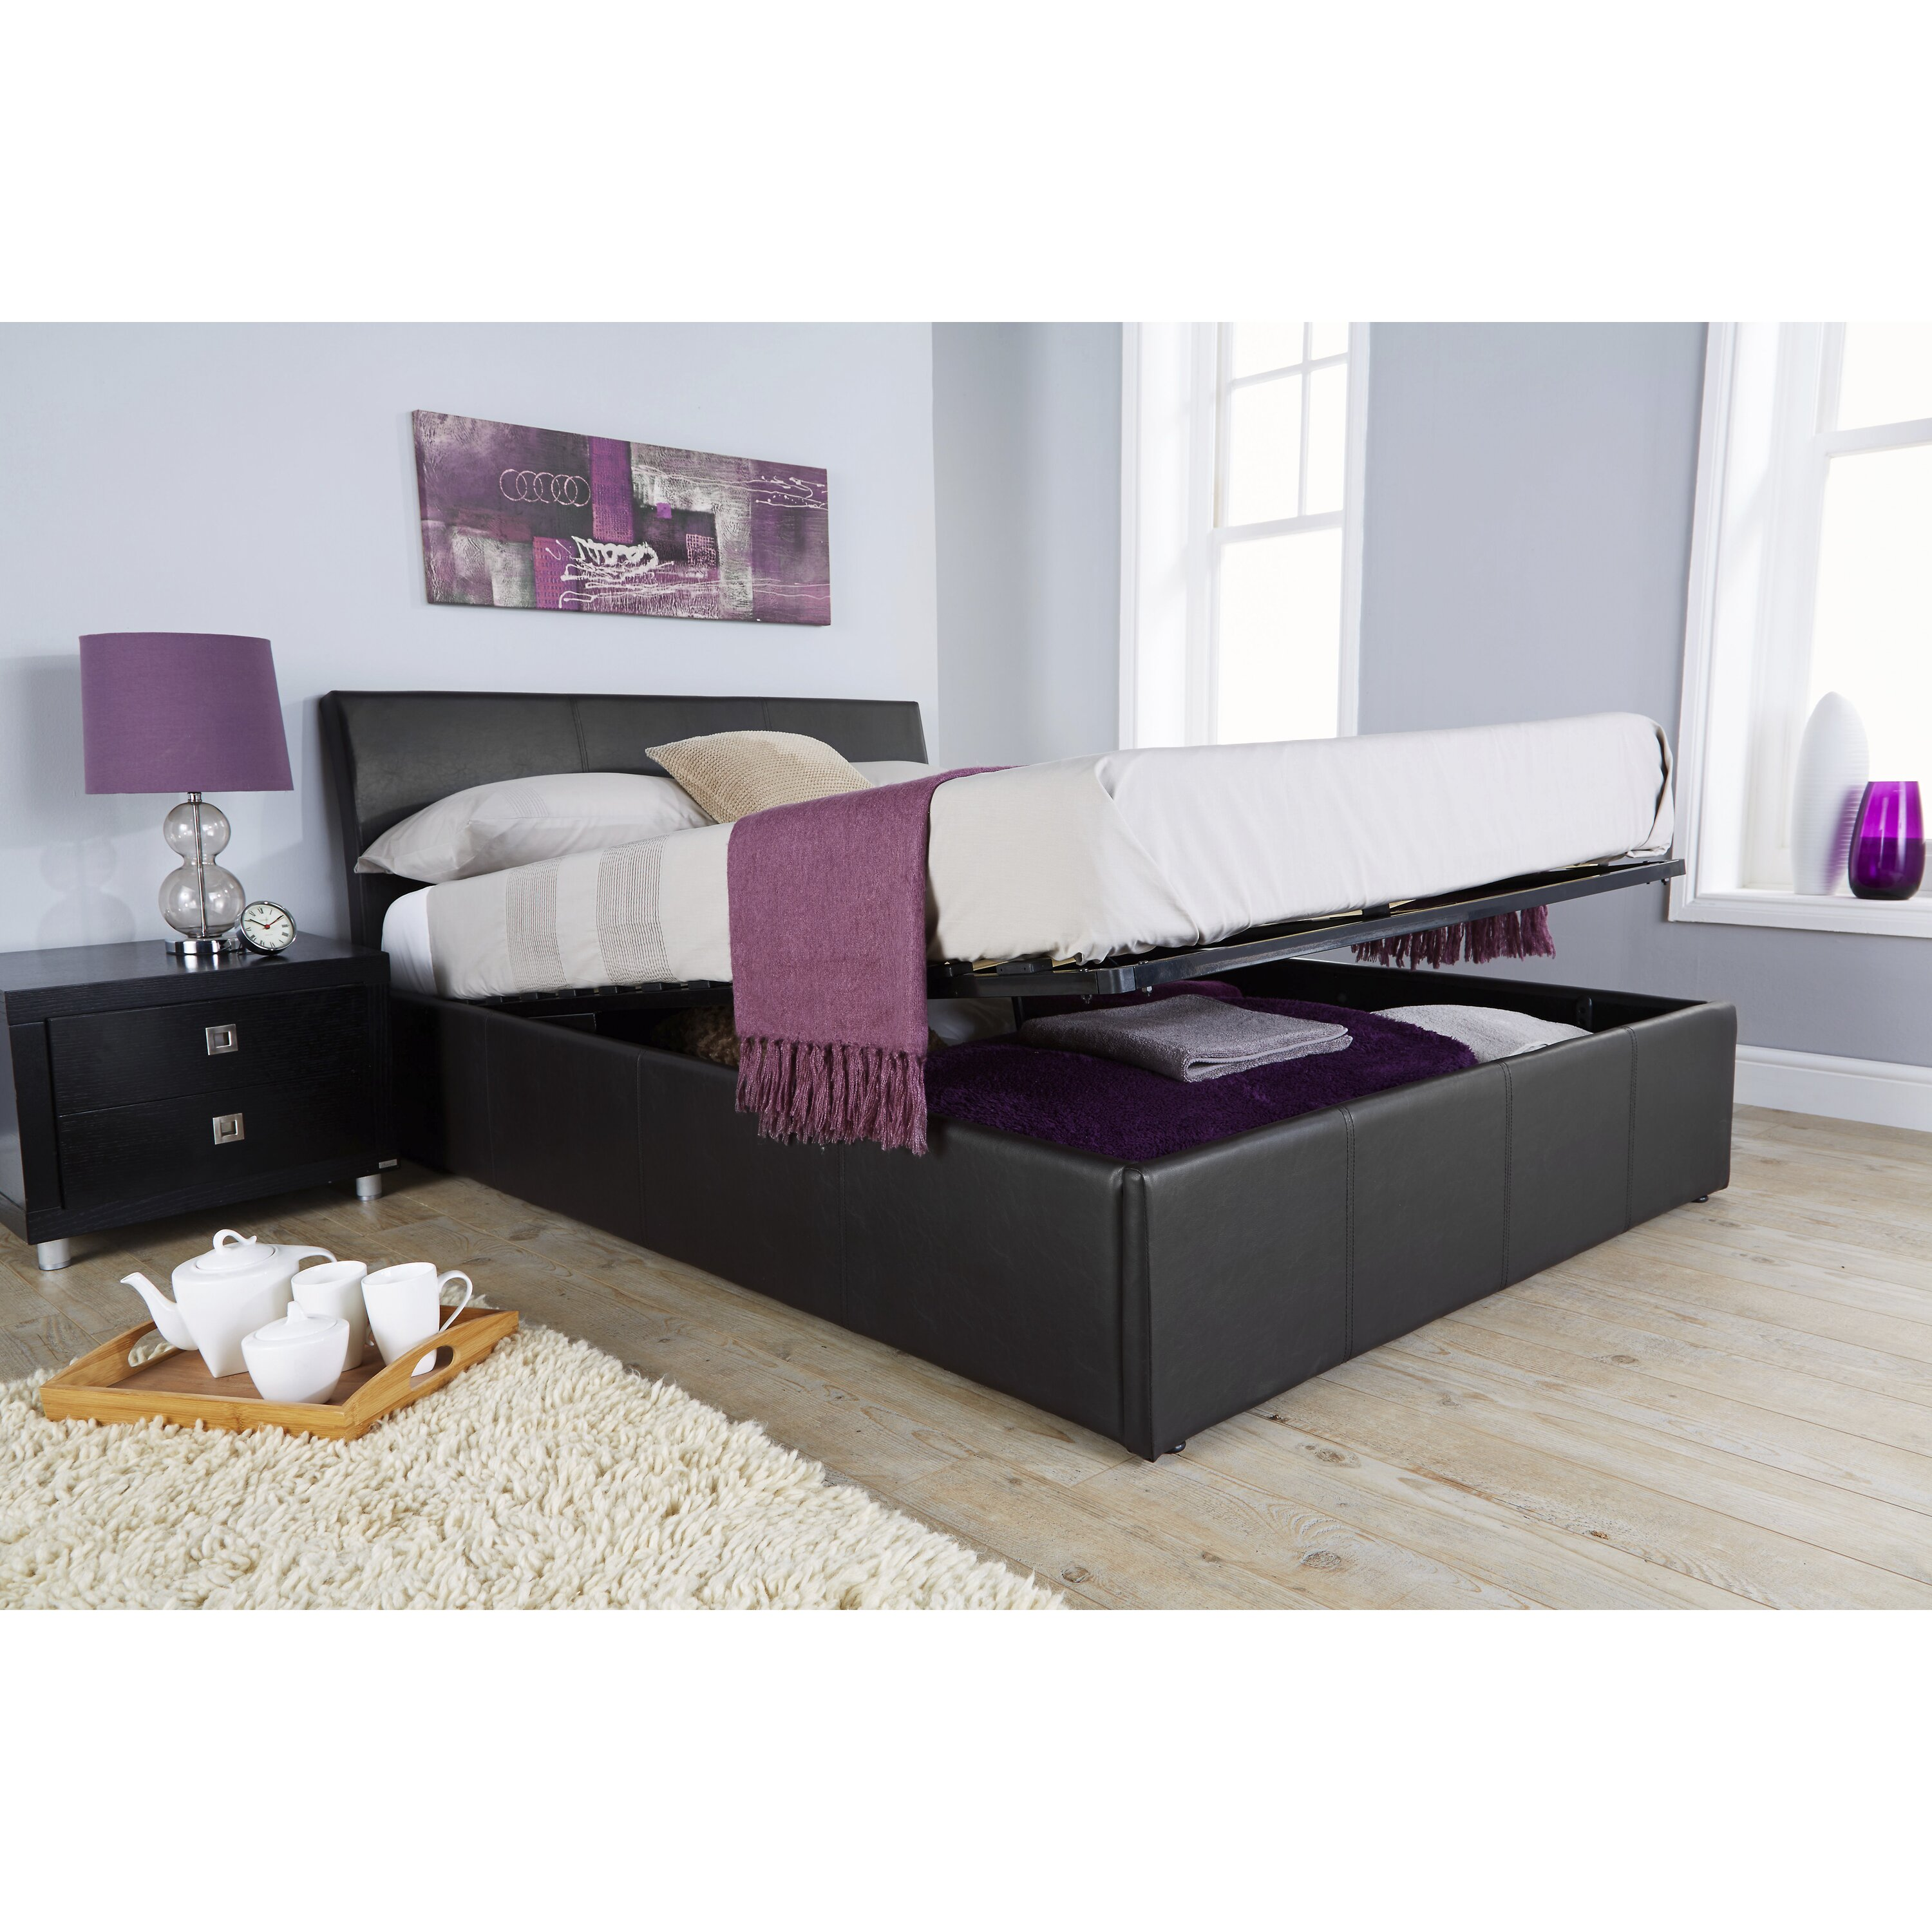 Home loft concept annabelle upholstered ottoman bed for Home loft concept bunk bed